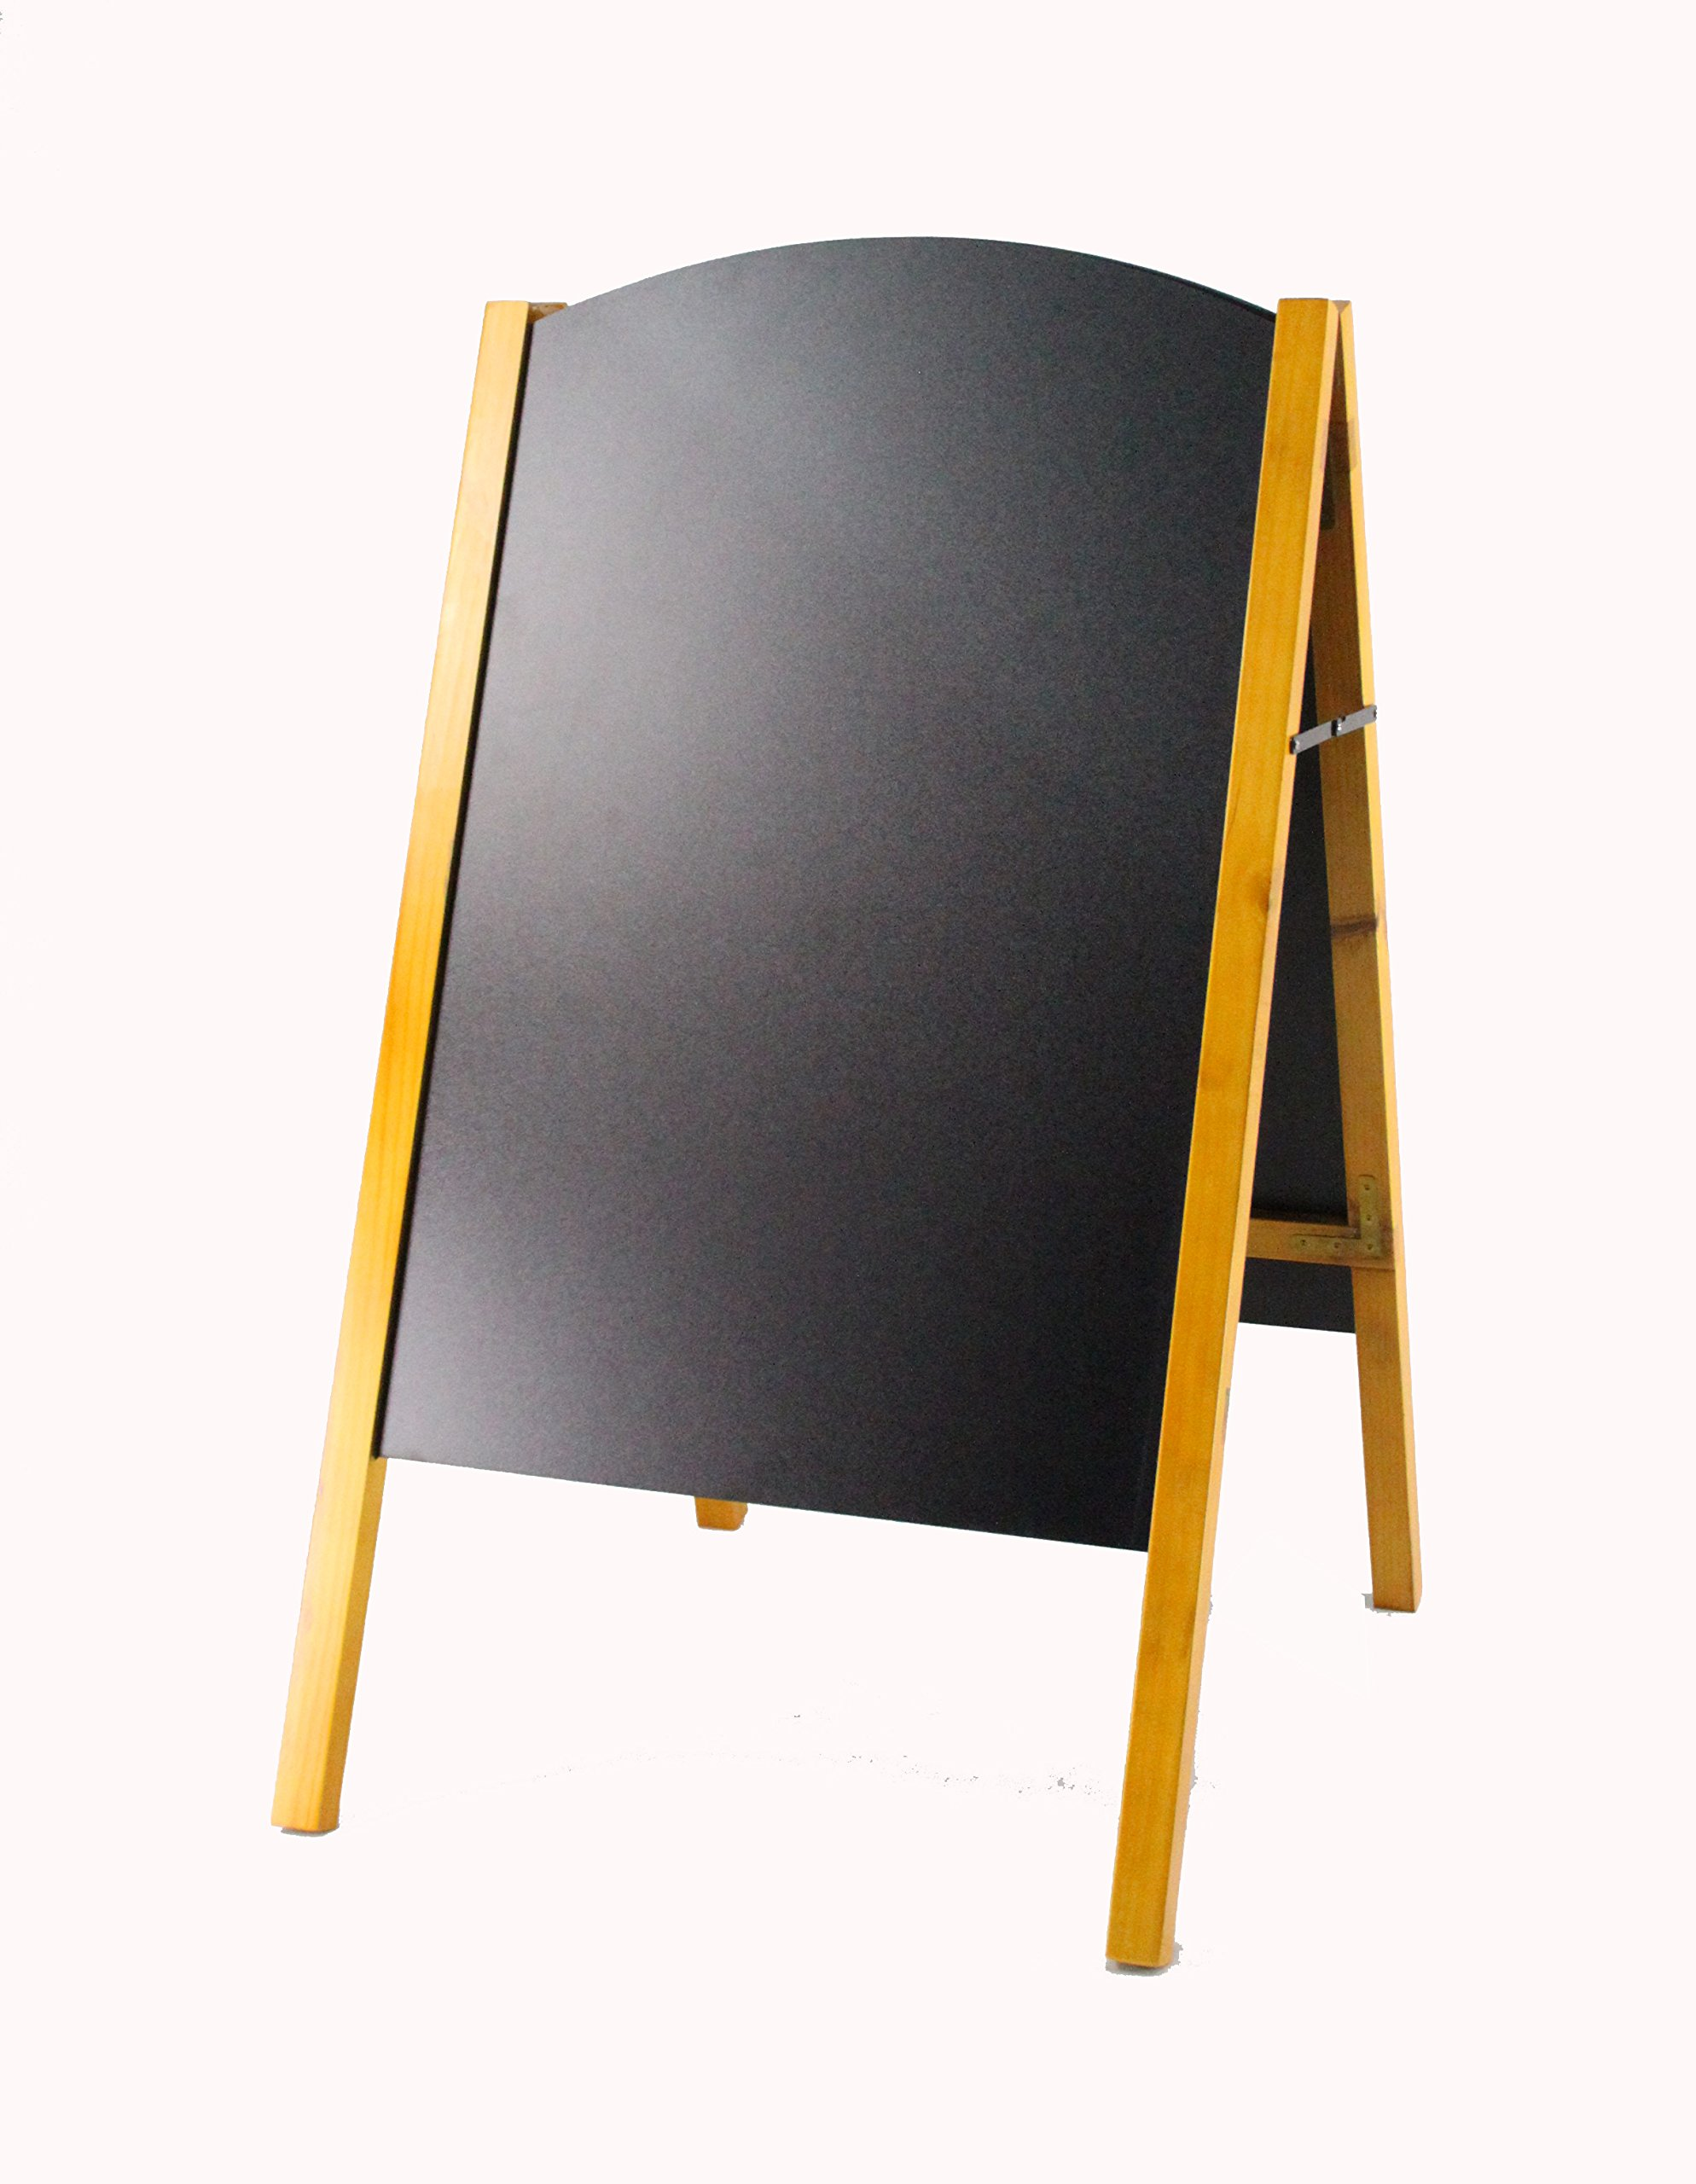 Fixture Displays 21 x 34 A-frame Chalkboard, Black Dry Erase for Traditional Chalks & Wet Erase for Liquid Chalks, Removable Boards, 2 Sided, Pine 19208